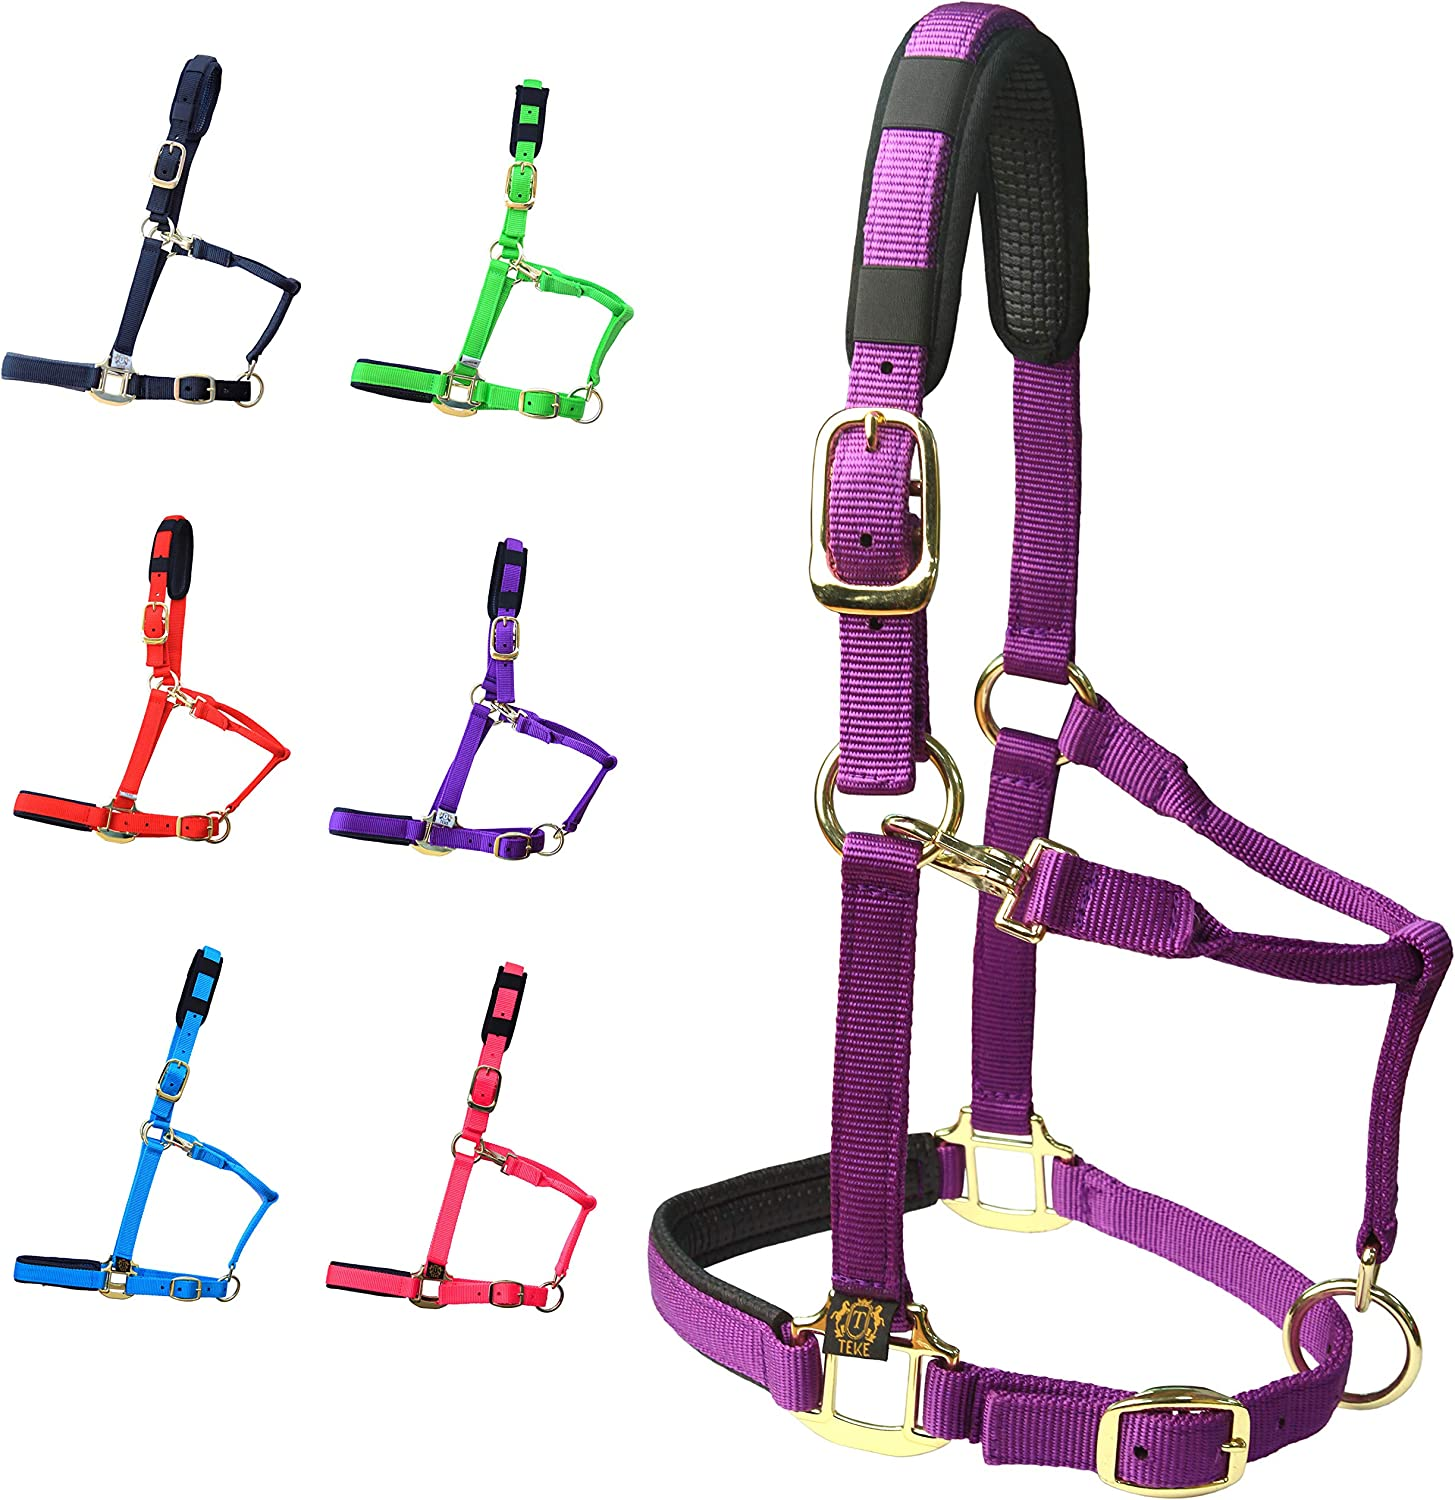 Horse Riding Gear for Beginners -